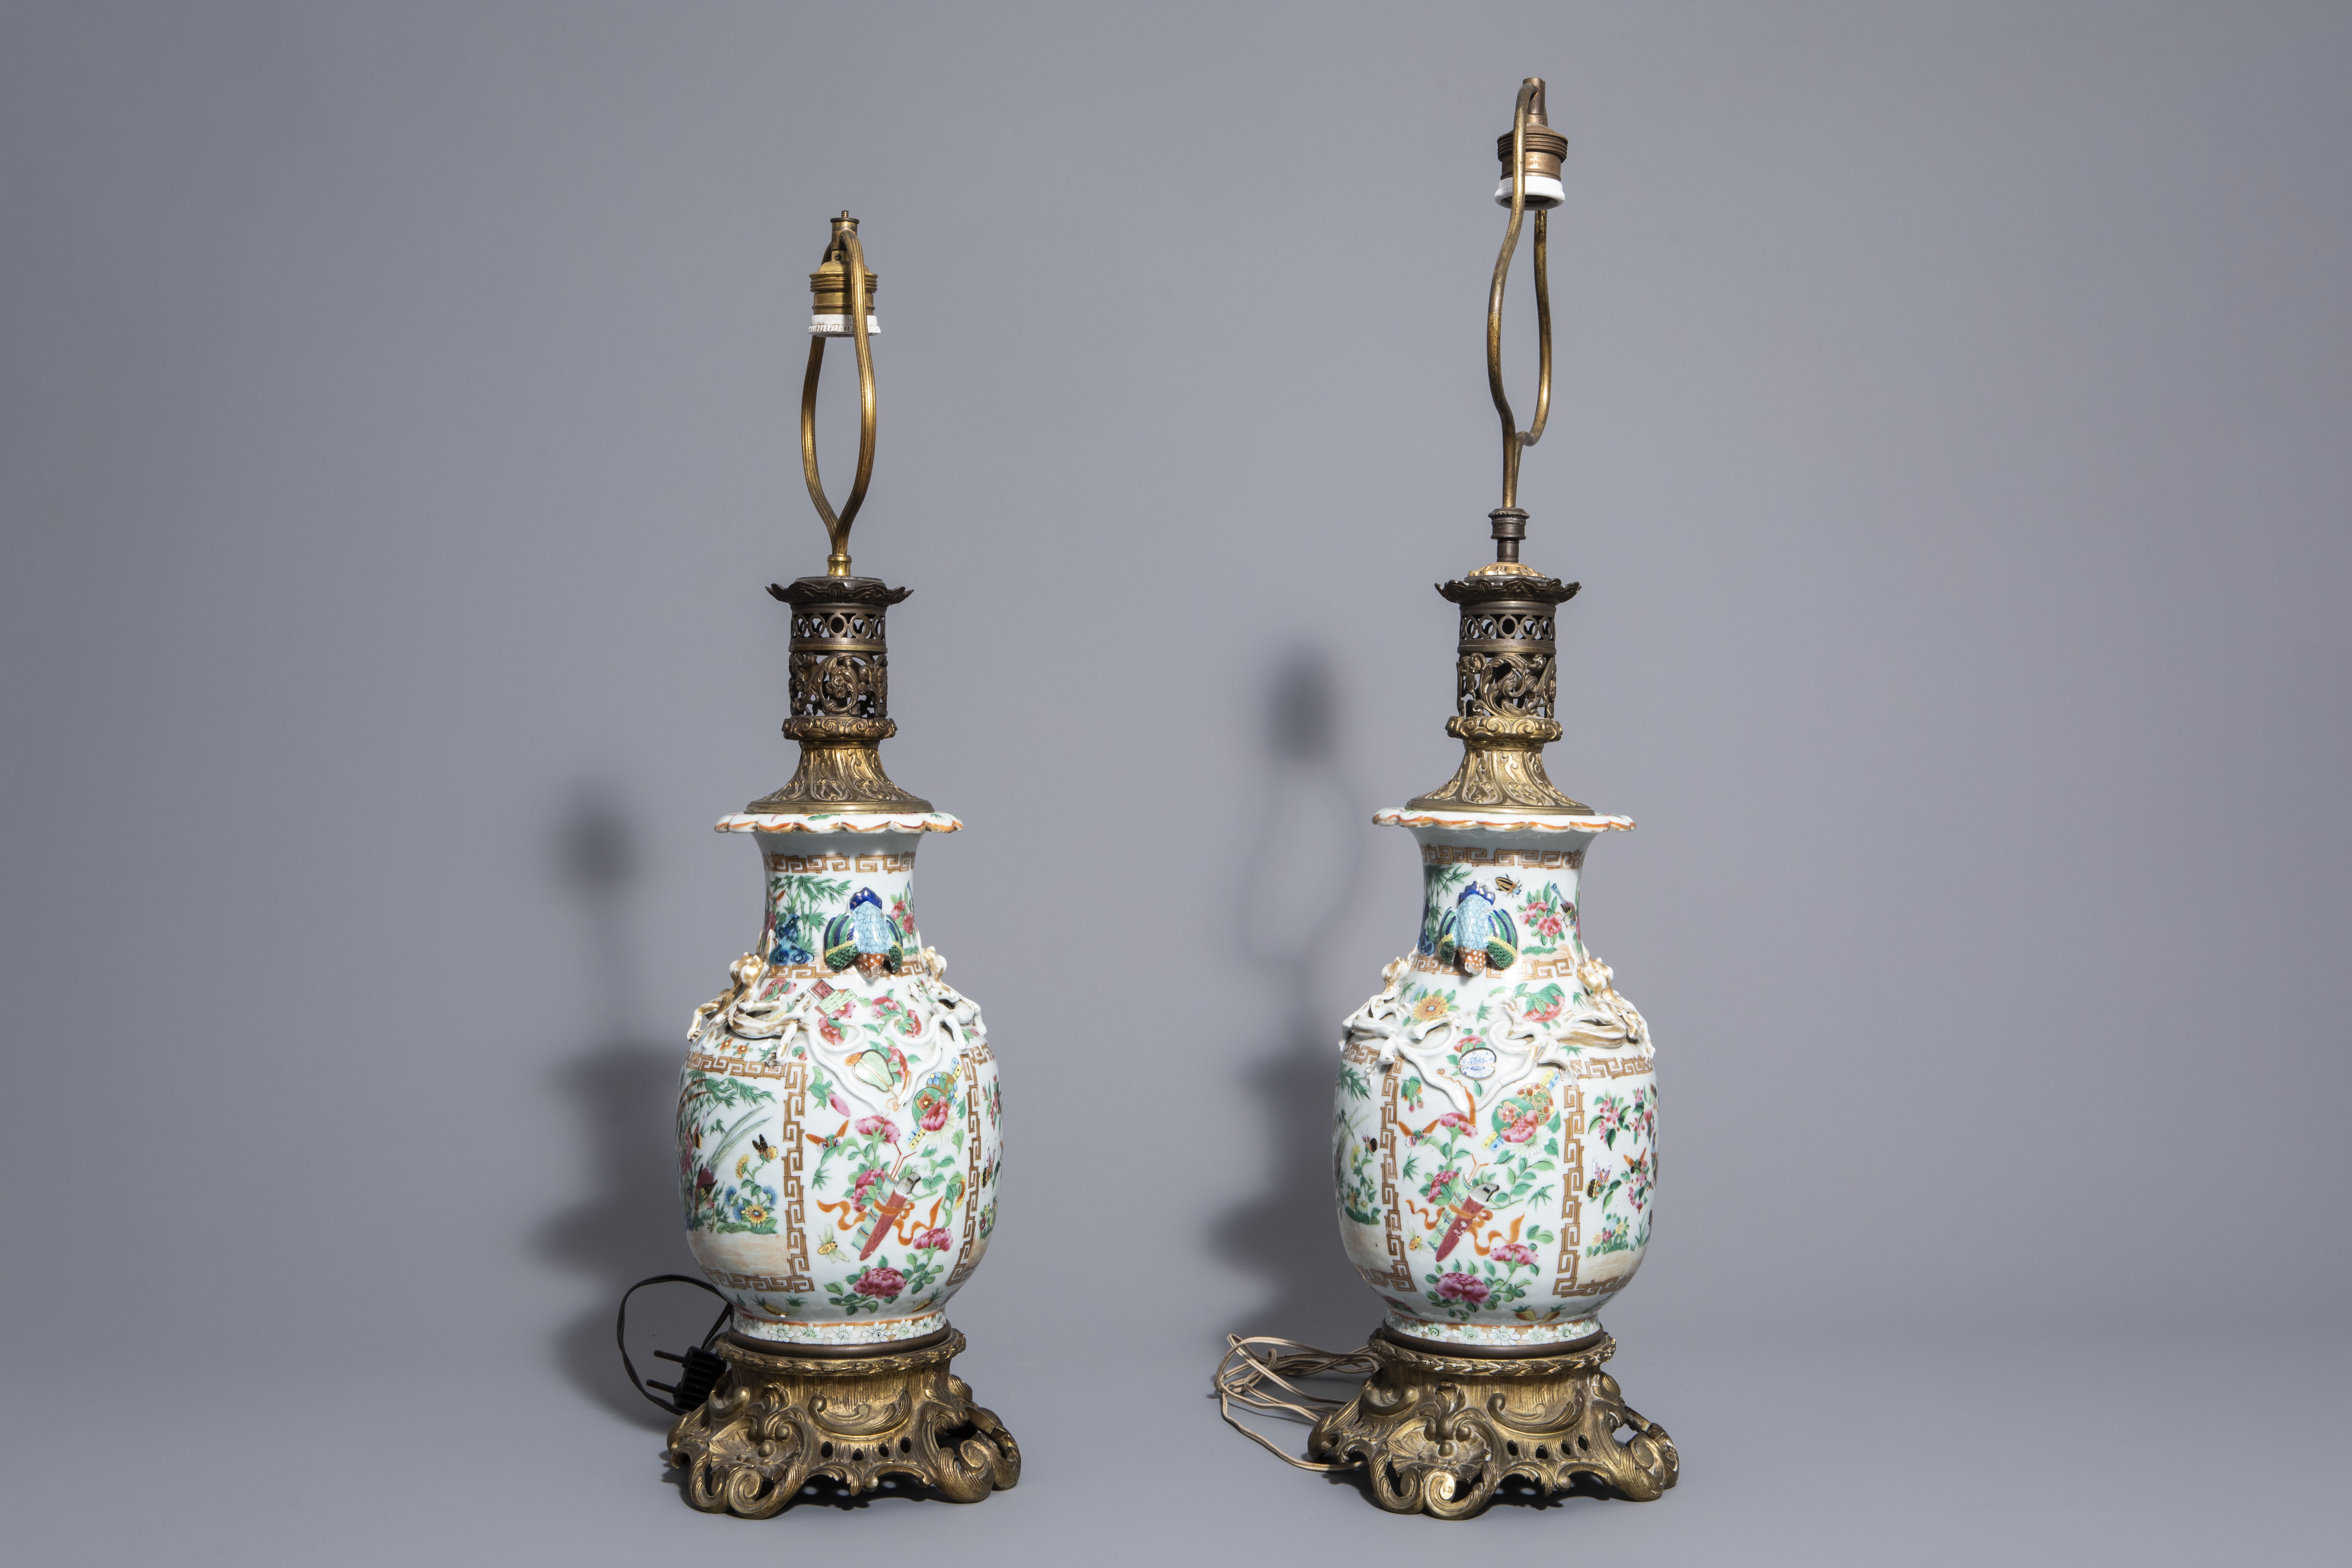 A pair of Chinese Canton famille rose vases mounted as lamps and a famille verte jar, 19th C. - Image 5 of 13